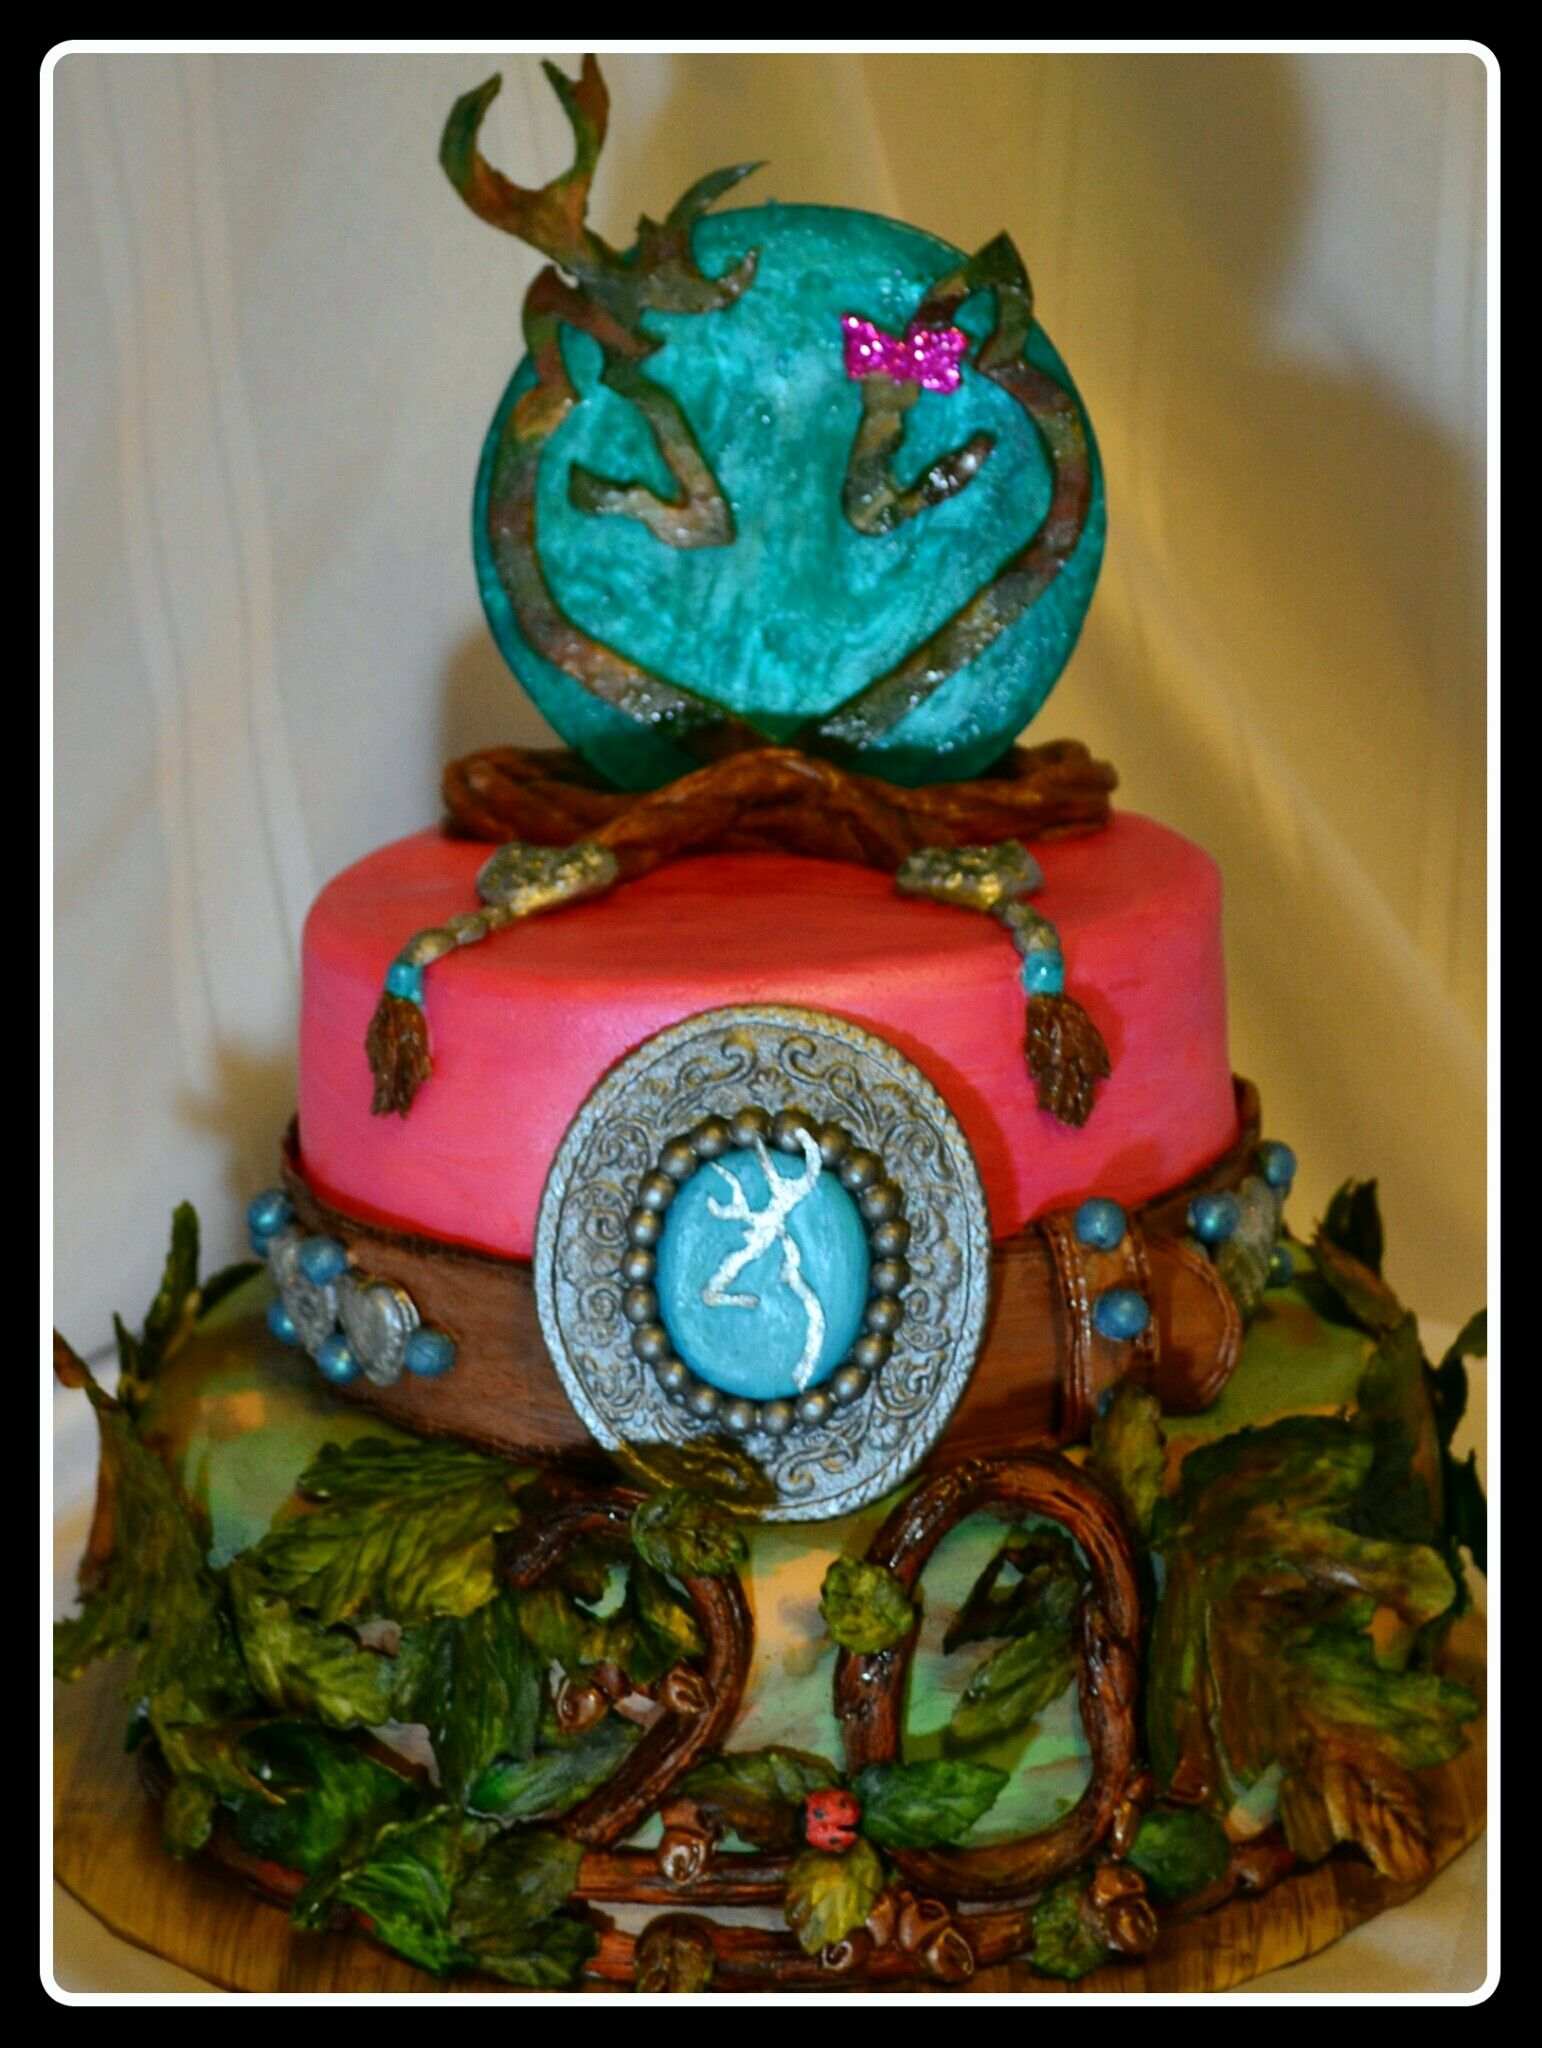 Hot pink and camo browning logo birthday cake tooled leather hot pink and camo browning logo birthday cake tooled leather belt and poured sugar cake topper cover this yummy strawberry cake biocorpaavc Images